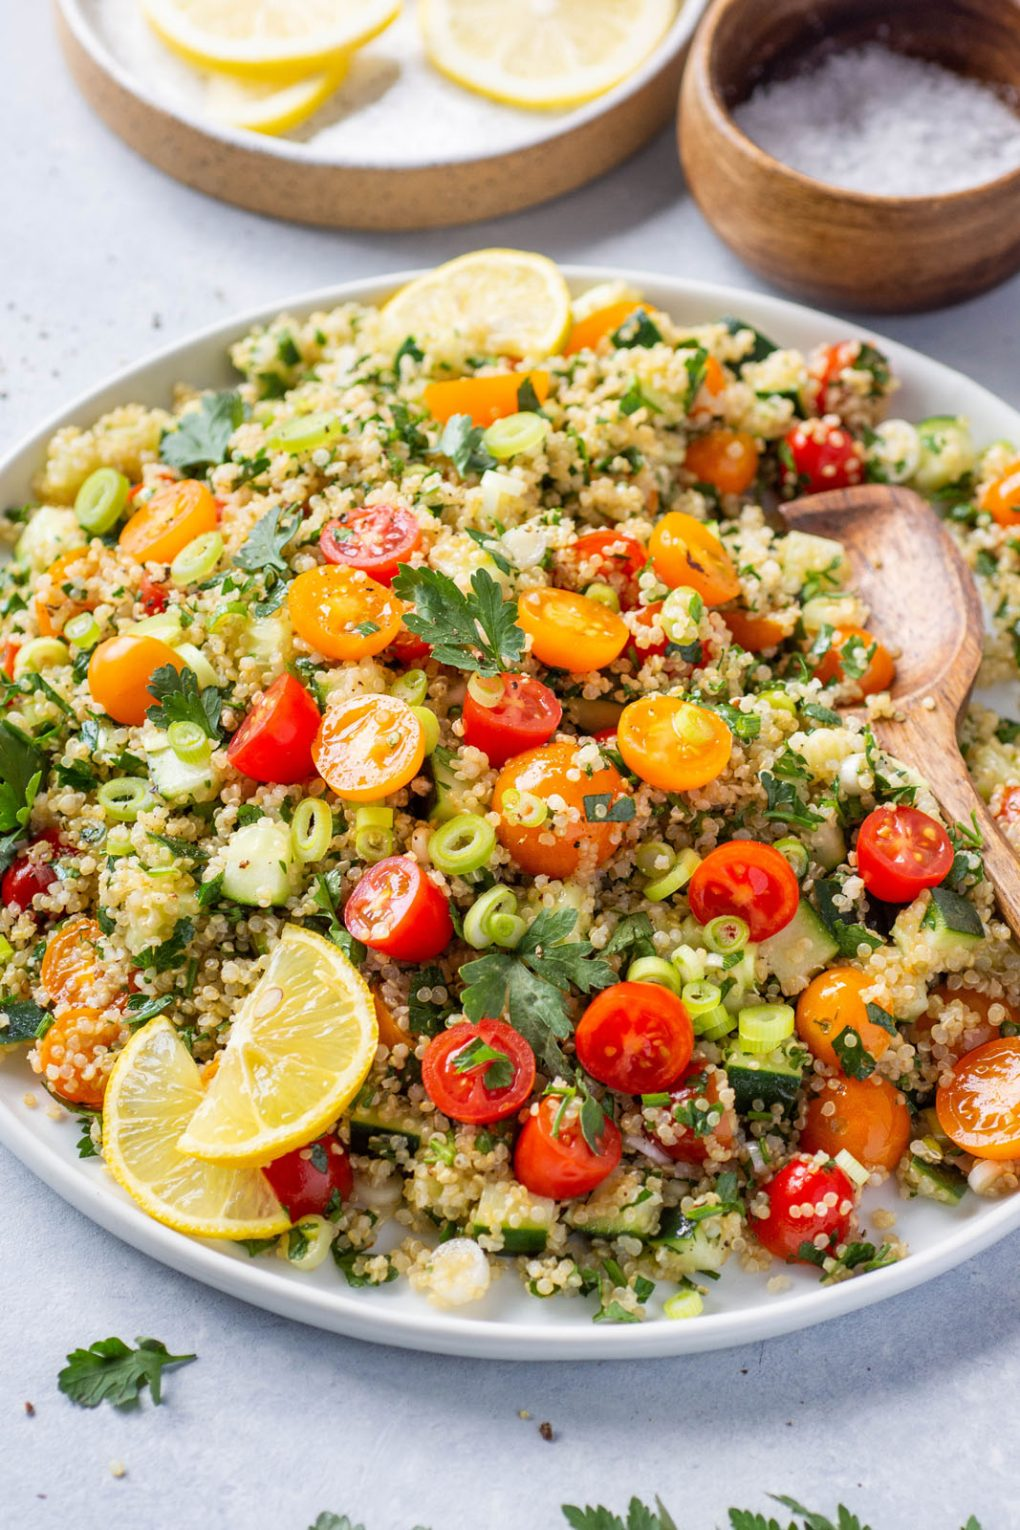 45 degree angle shot a large colorful plate of quinoa tabbouleh with red and orange cherry tomatoes, cucumber, parsley, and green onions. Garnished with a few lemon wedges on a light colored background surrounded by some scattered herbs and cherry tomatoes.